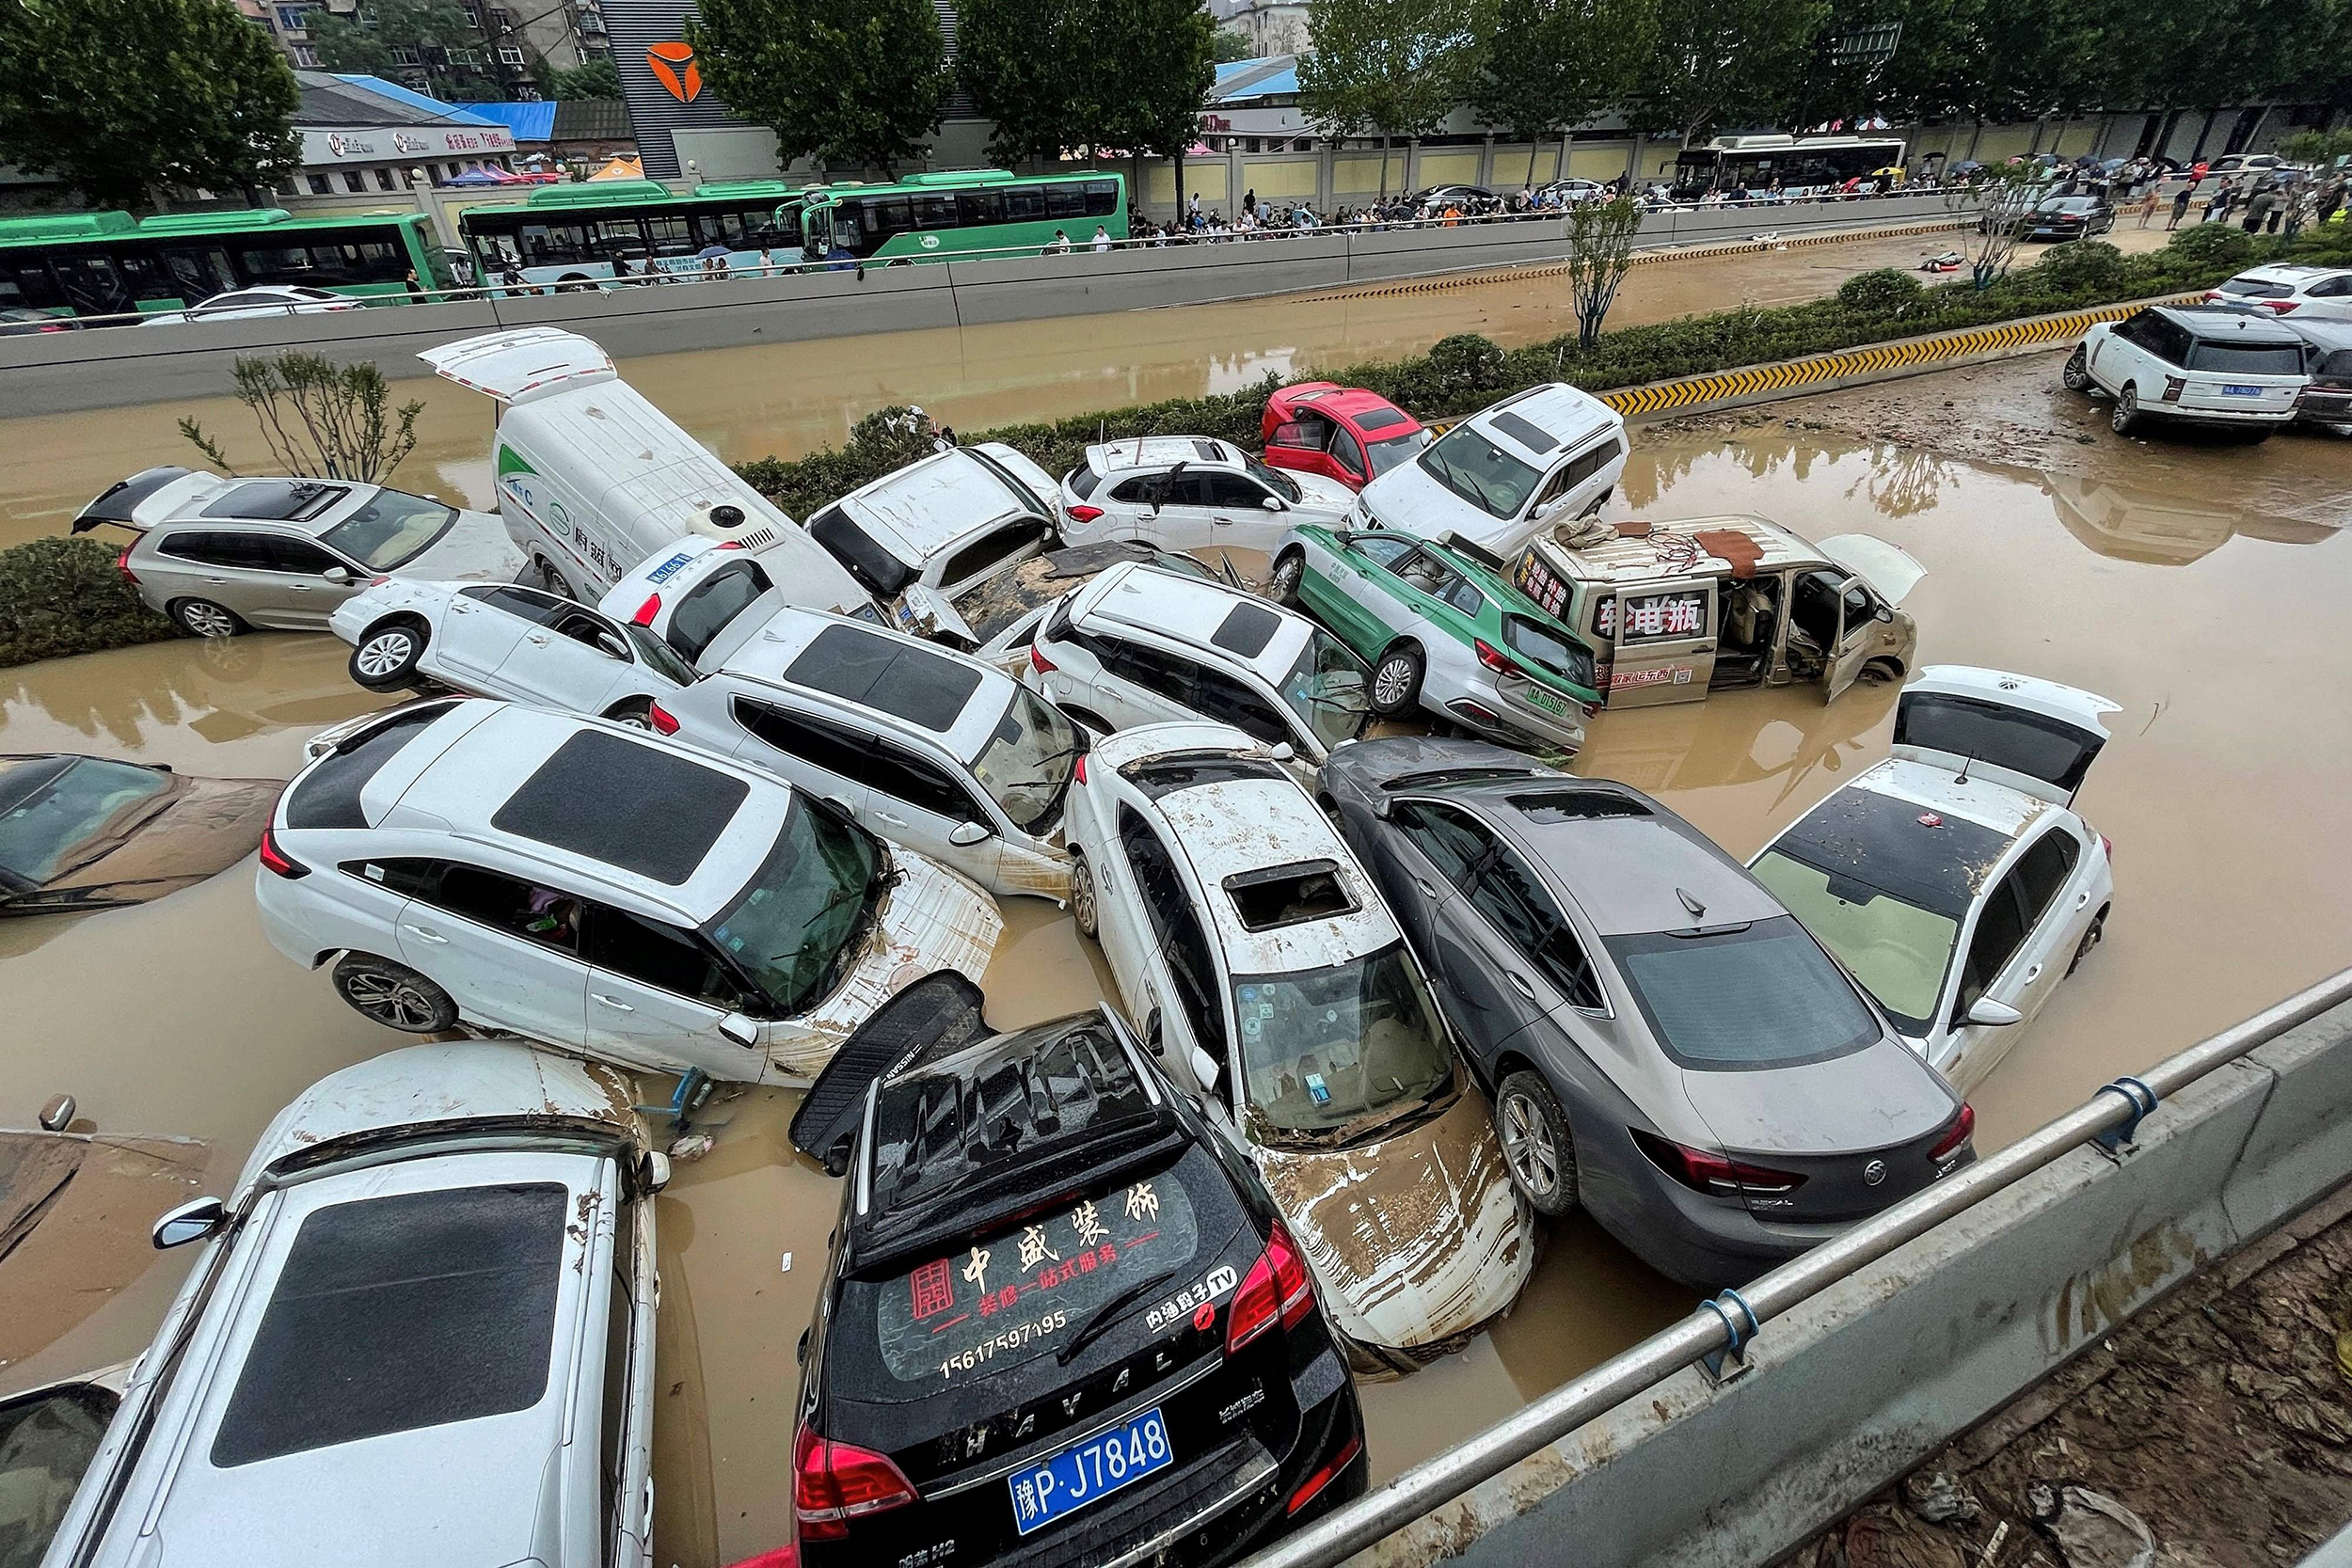 At least 25 dead in China as province deluged by heaviest rains in 1,000 years